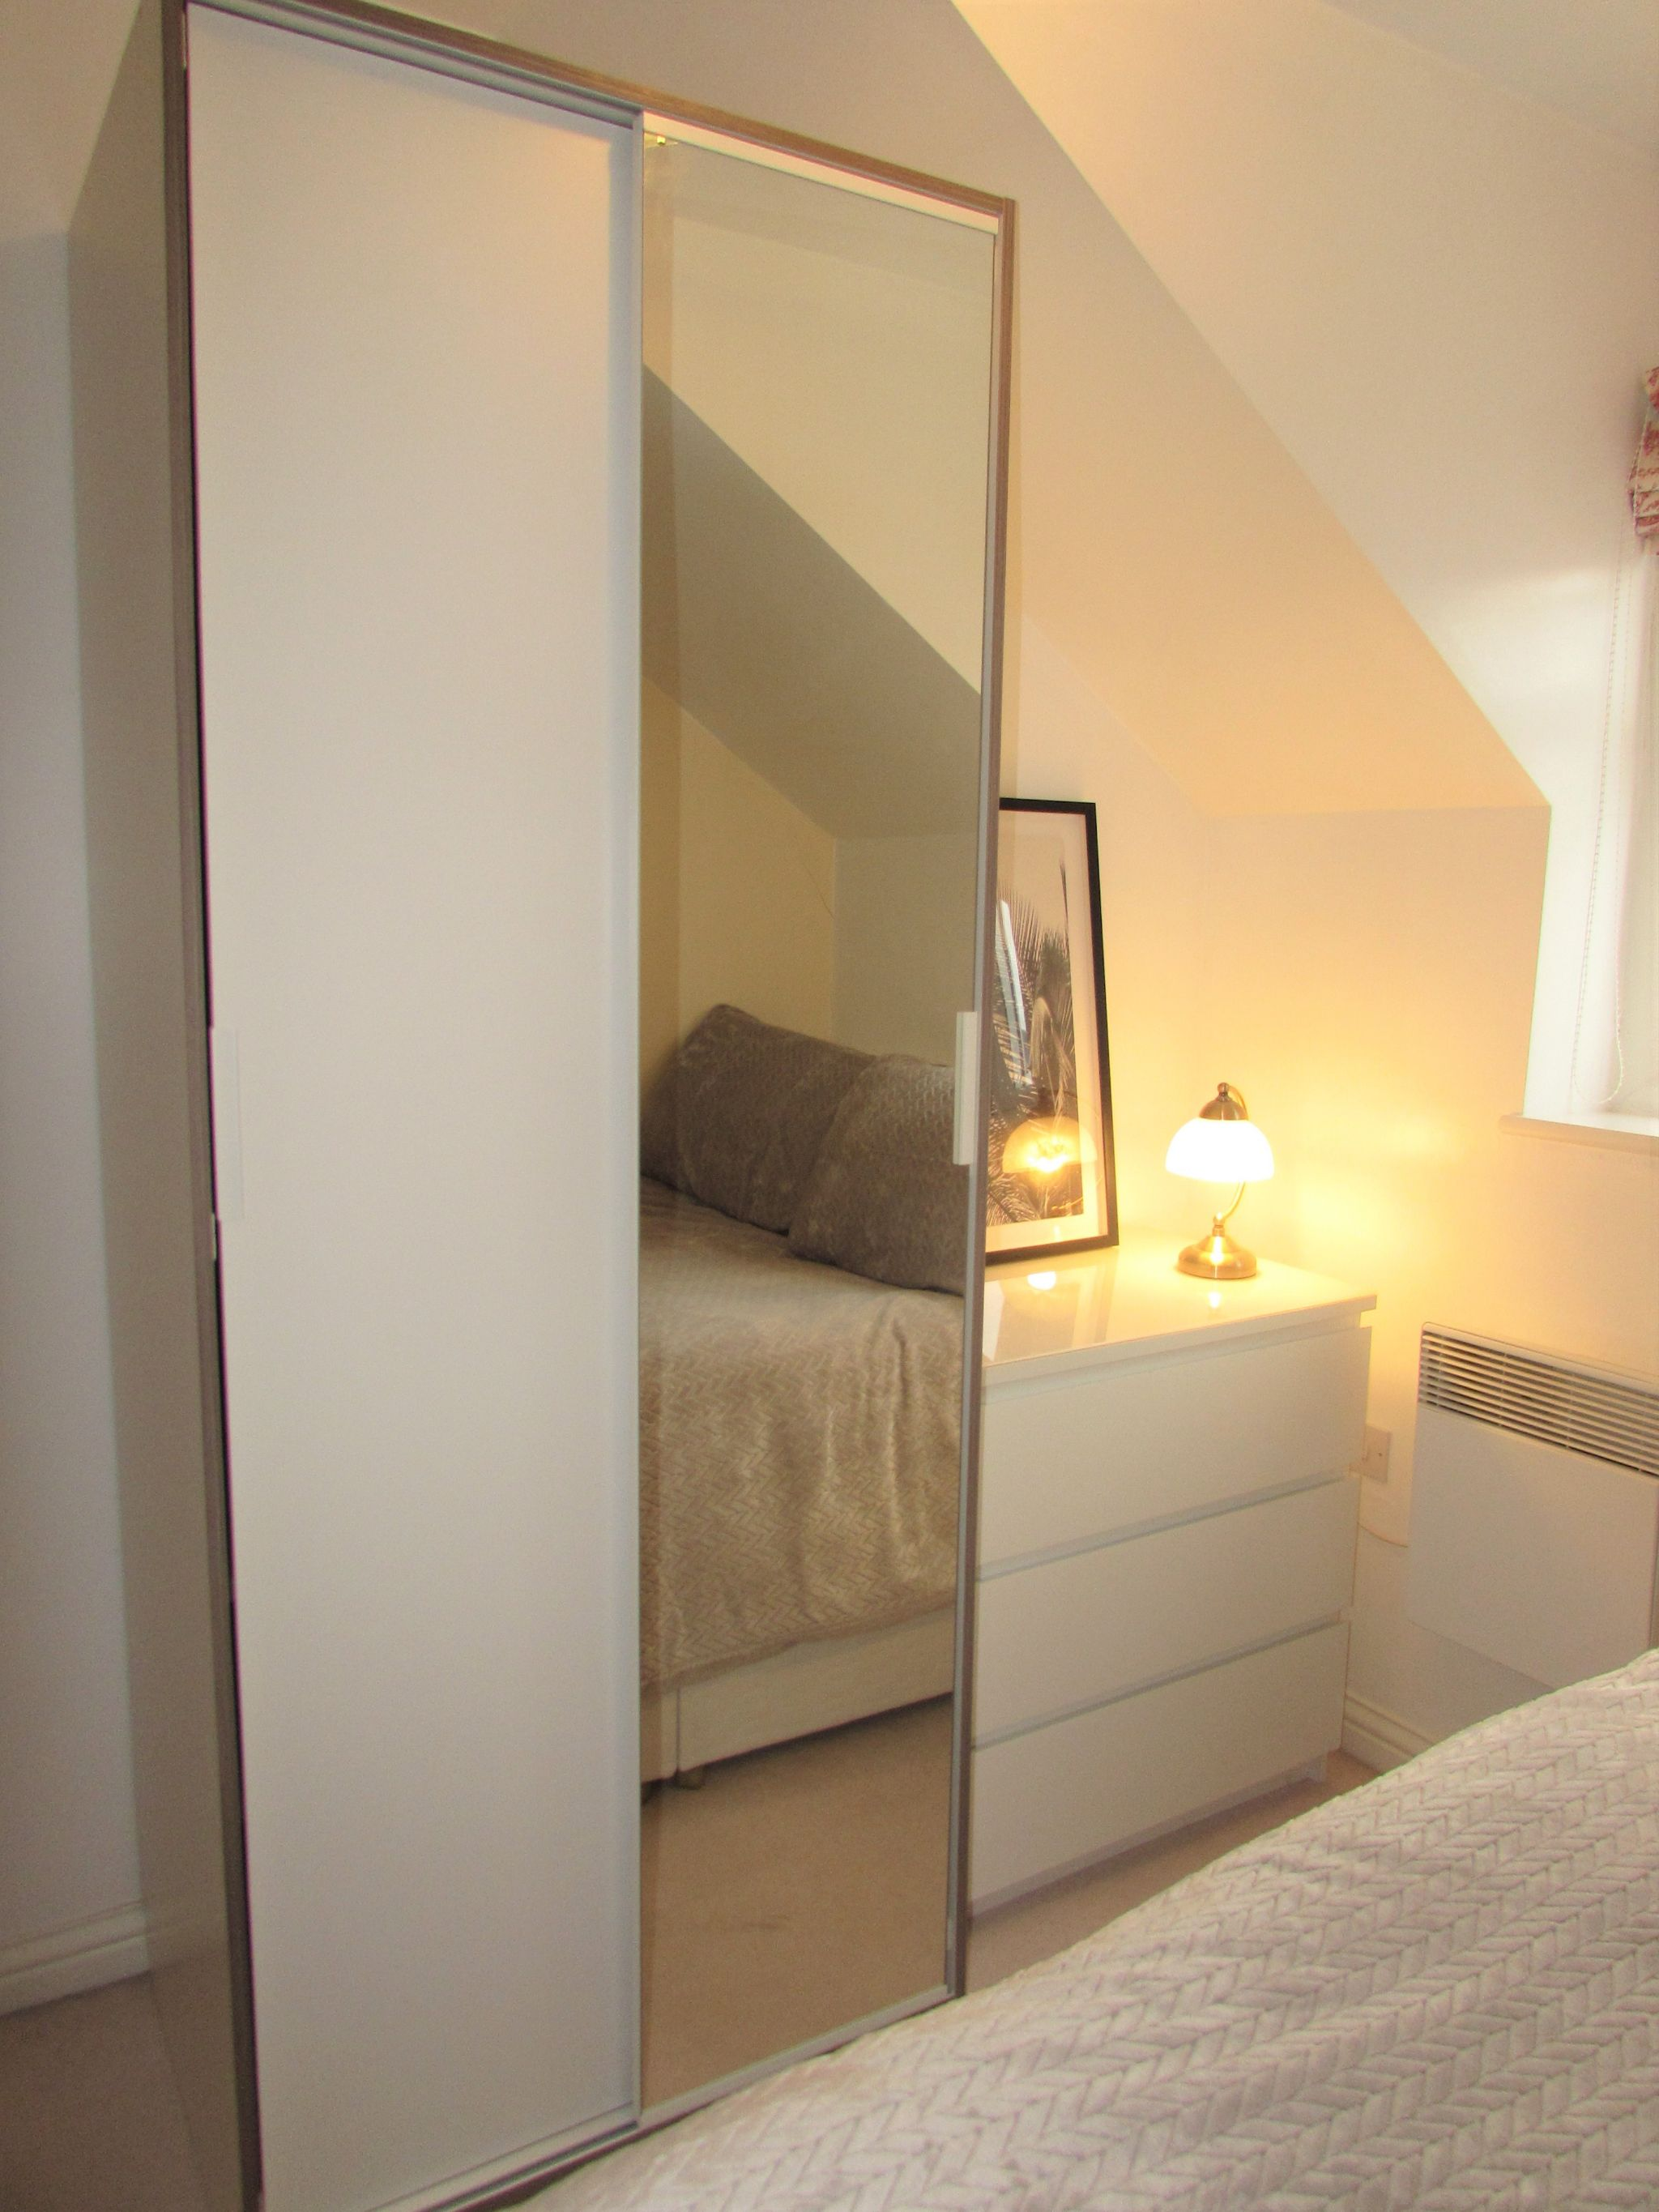 1 Bedroom Shared Flat/apartment To Rent - Photograph 4